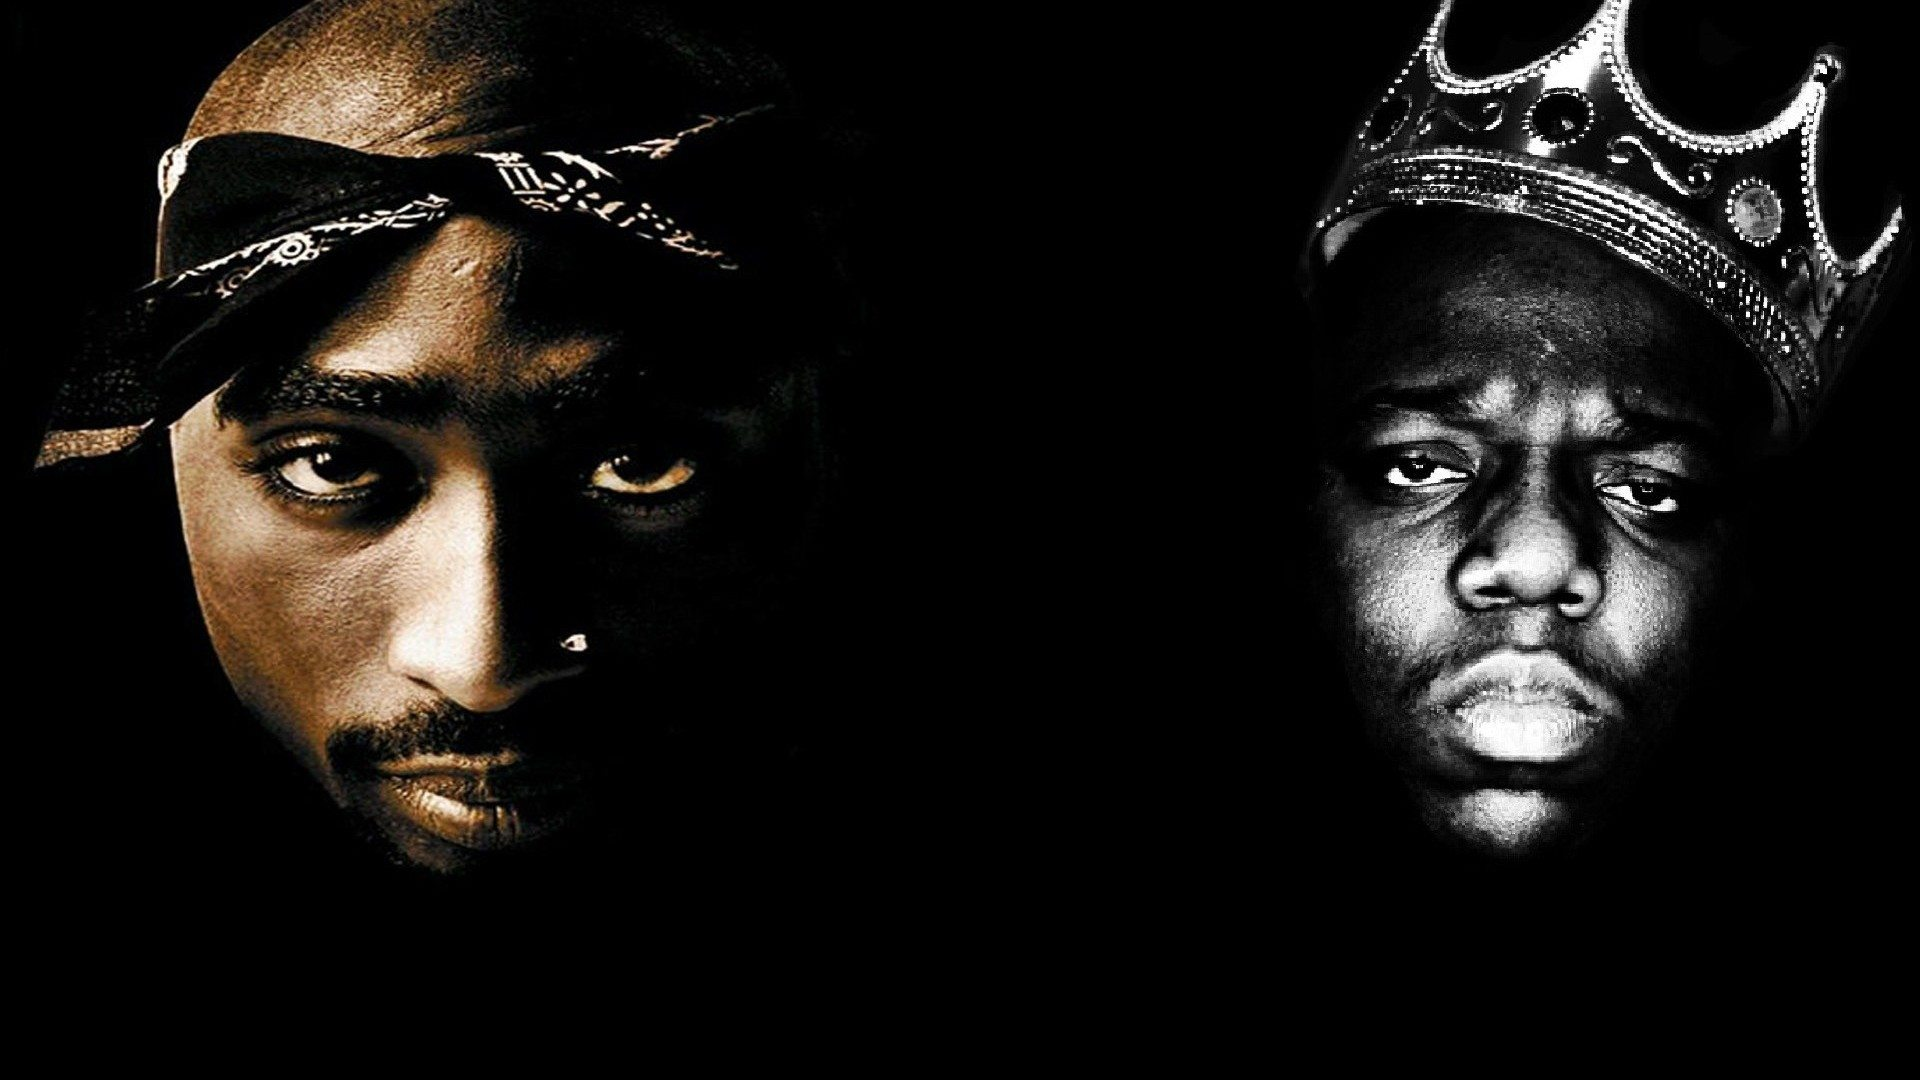 the dispute between biggie and tupac Episode 7 of unsolved starts out with a glimpse into the now unwavering bond between tupac and suge knight as well as biggie and puff.